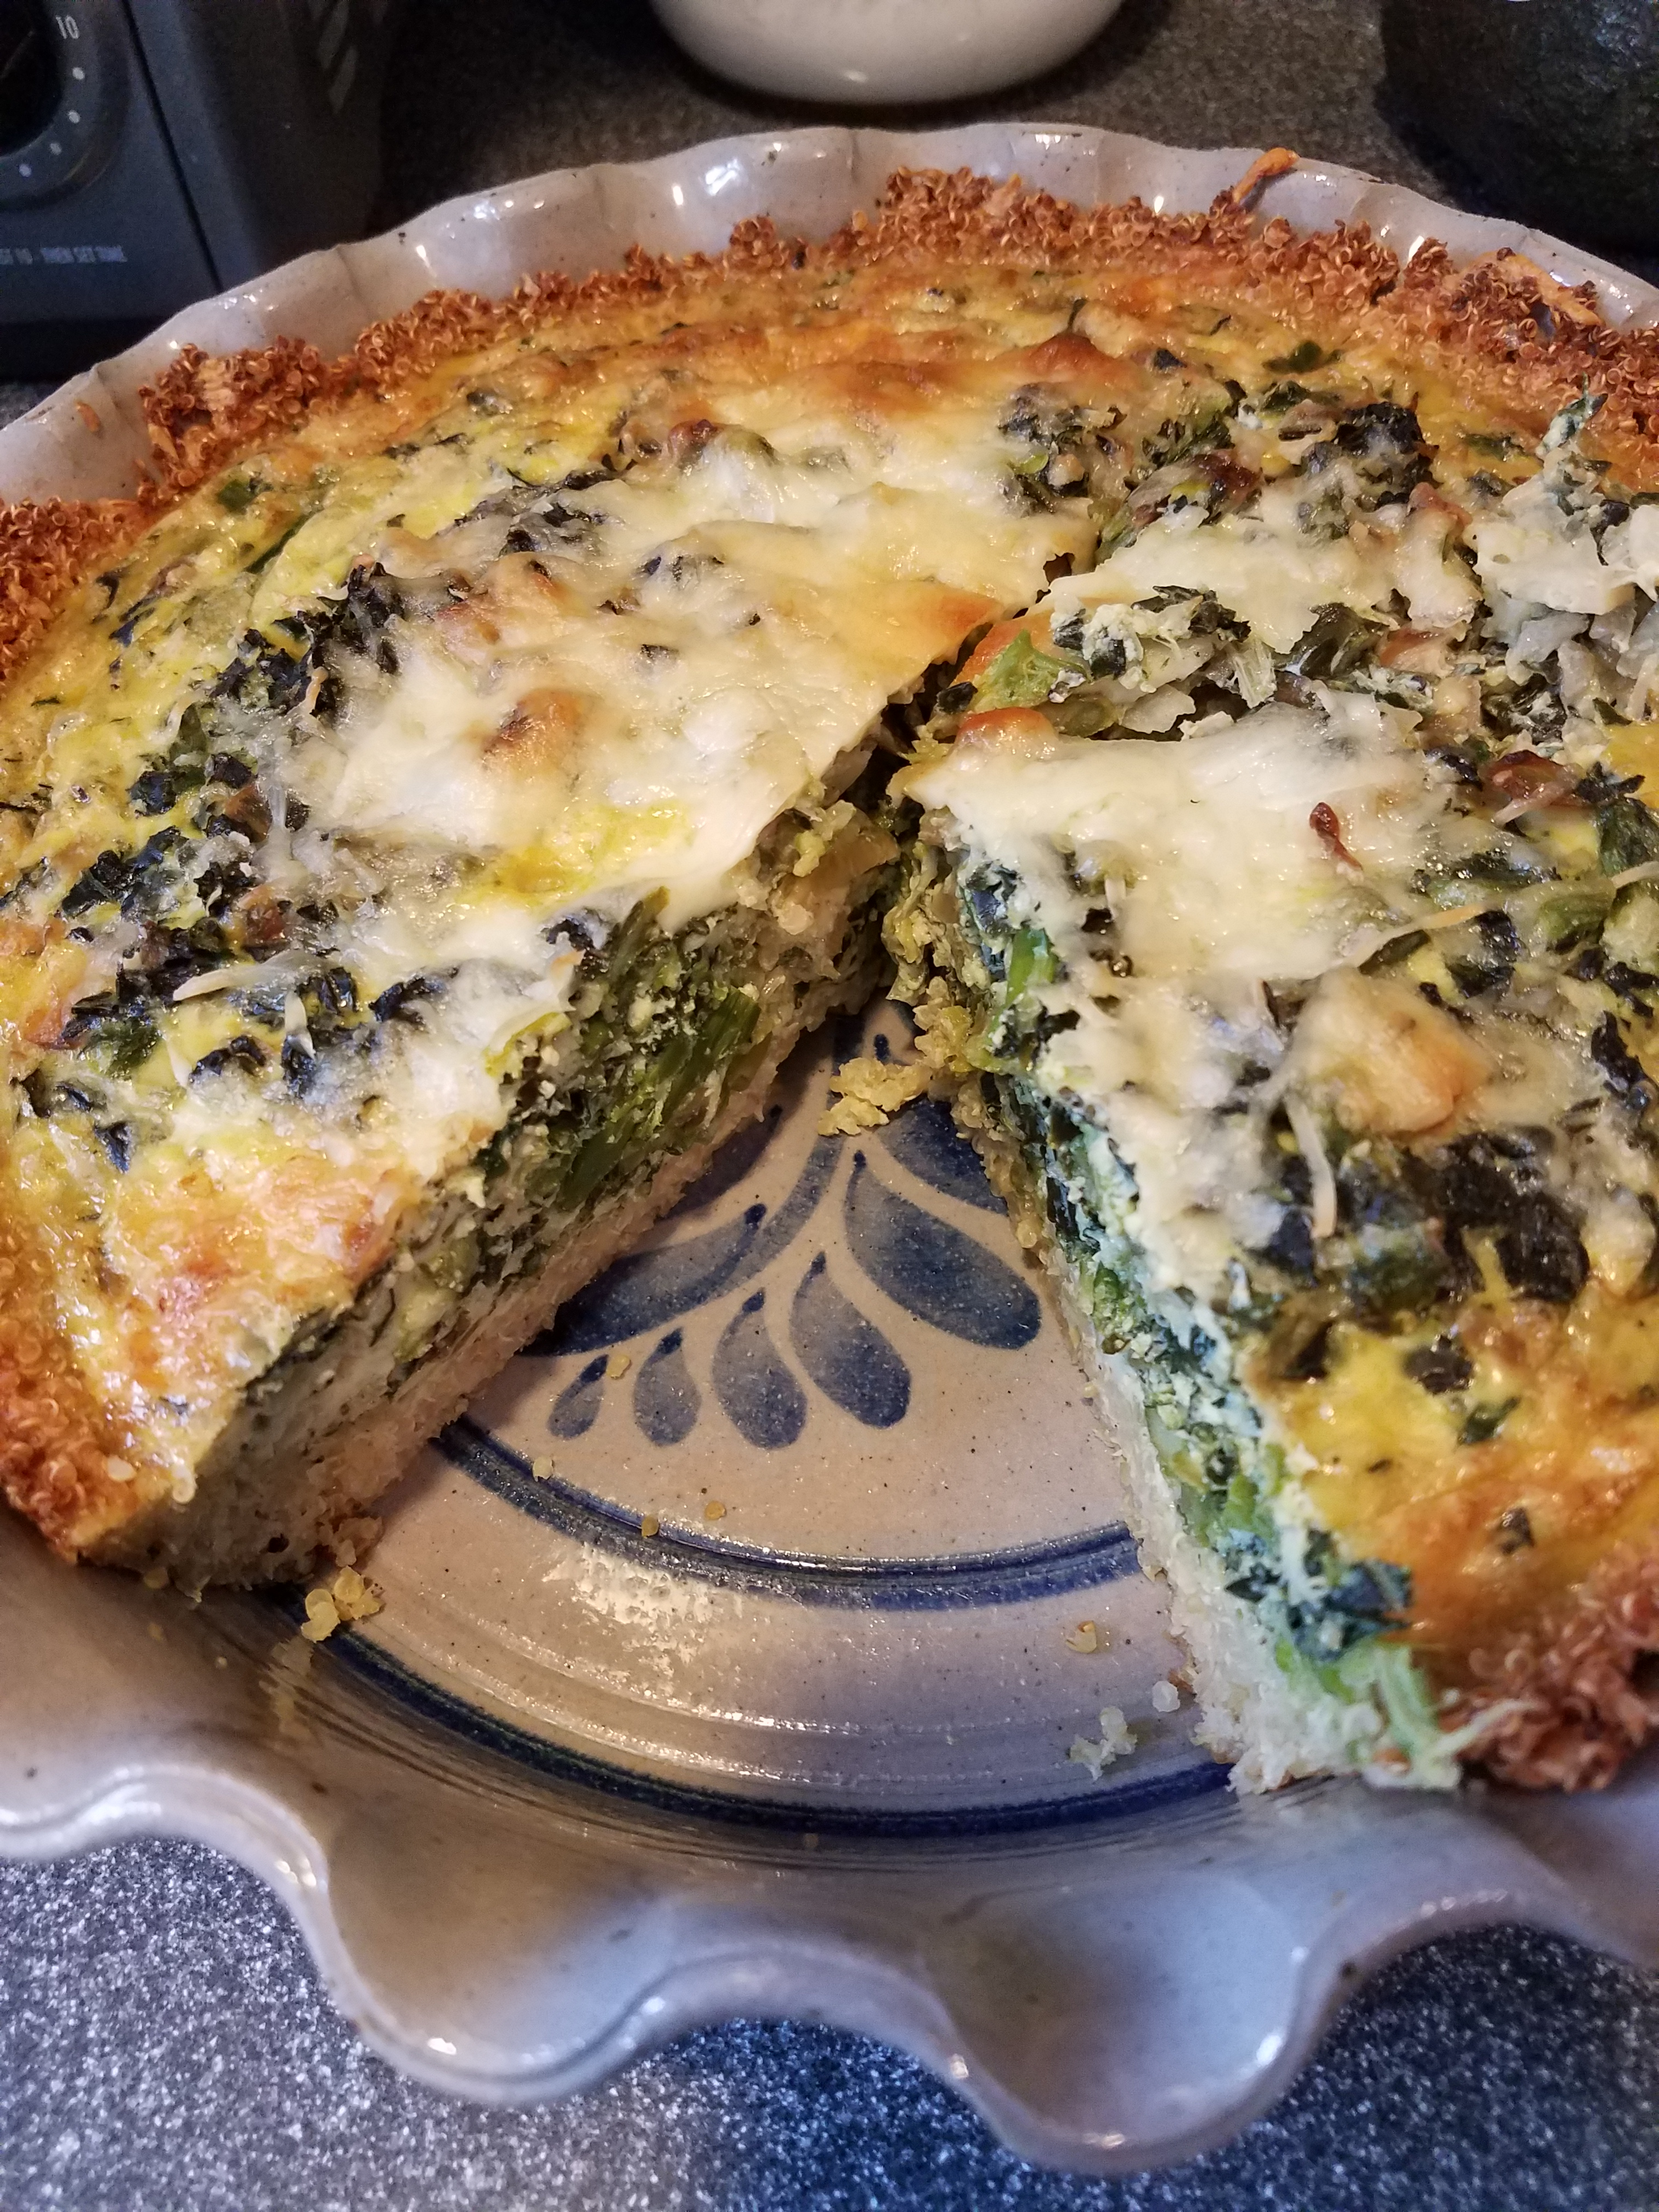 Egg Pie will never be the same